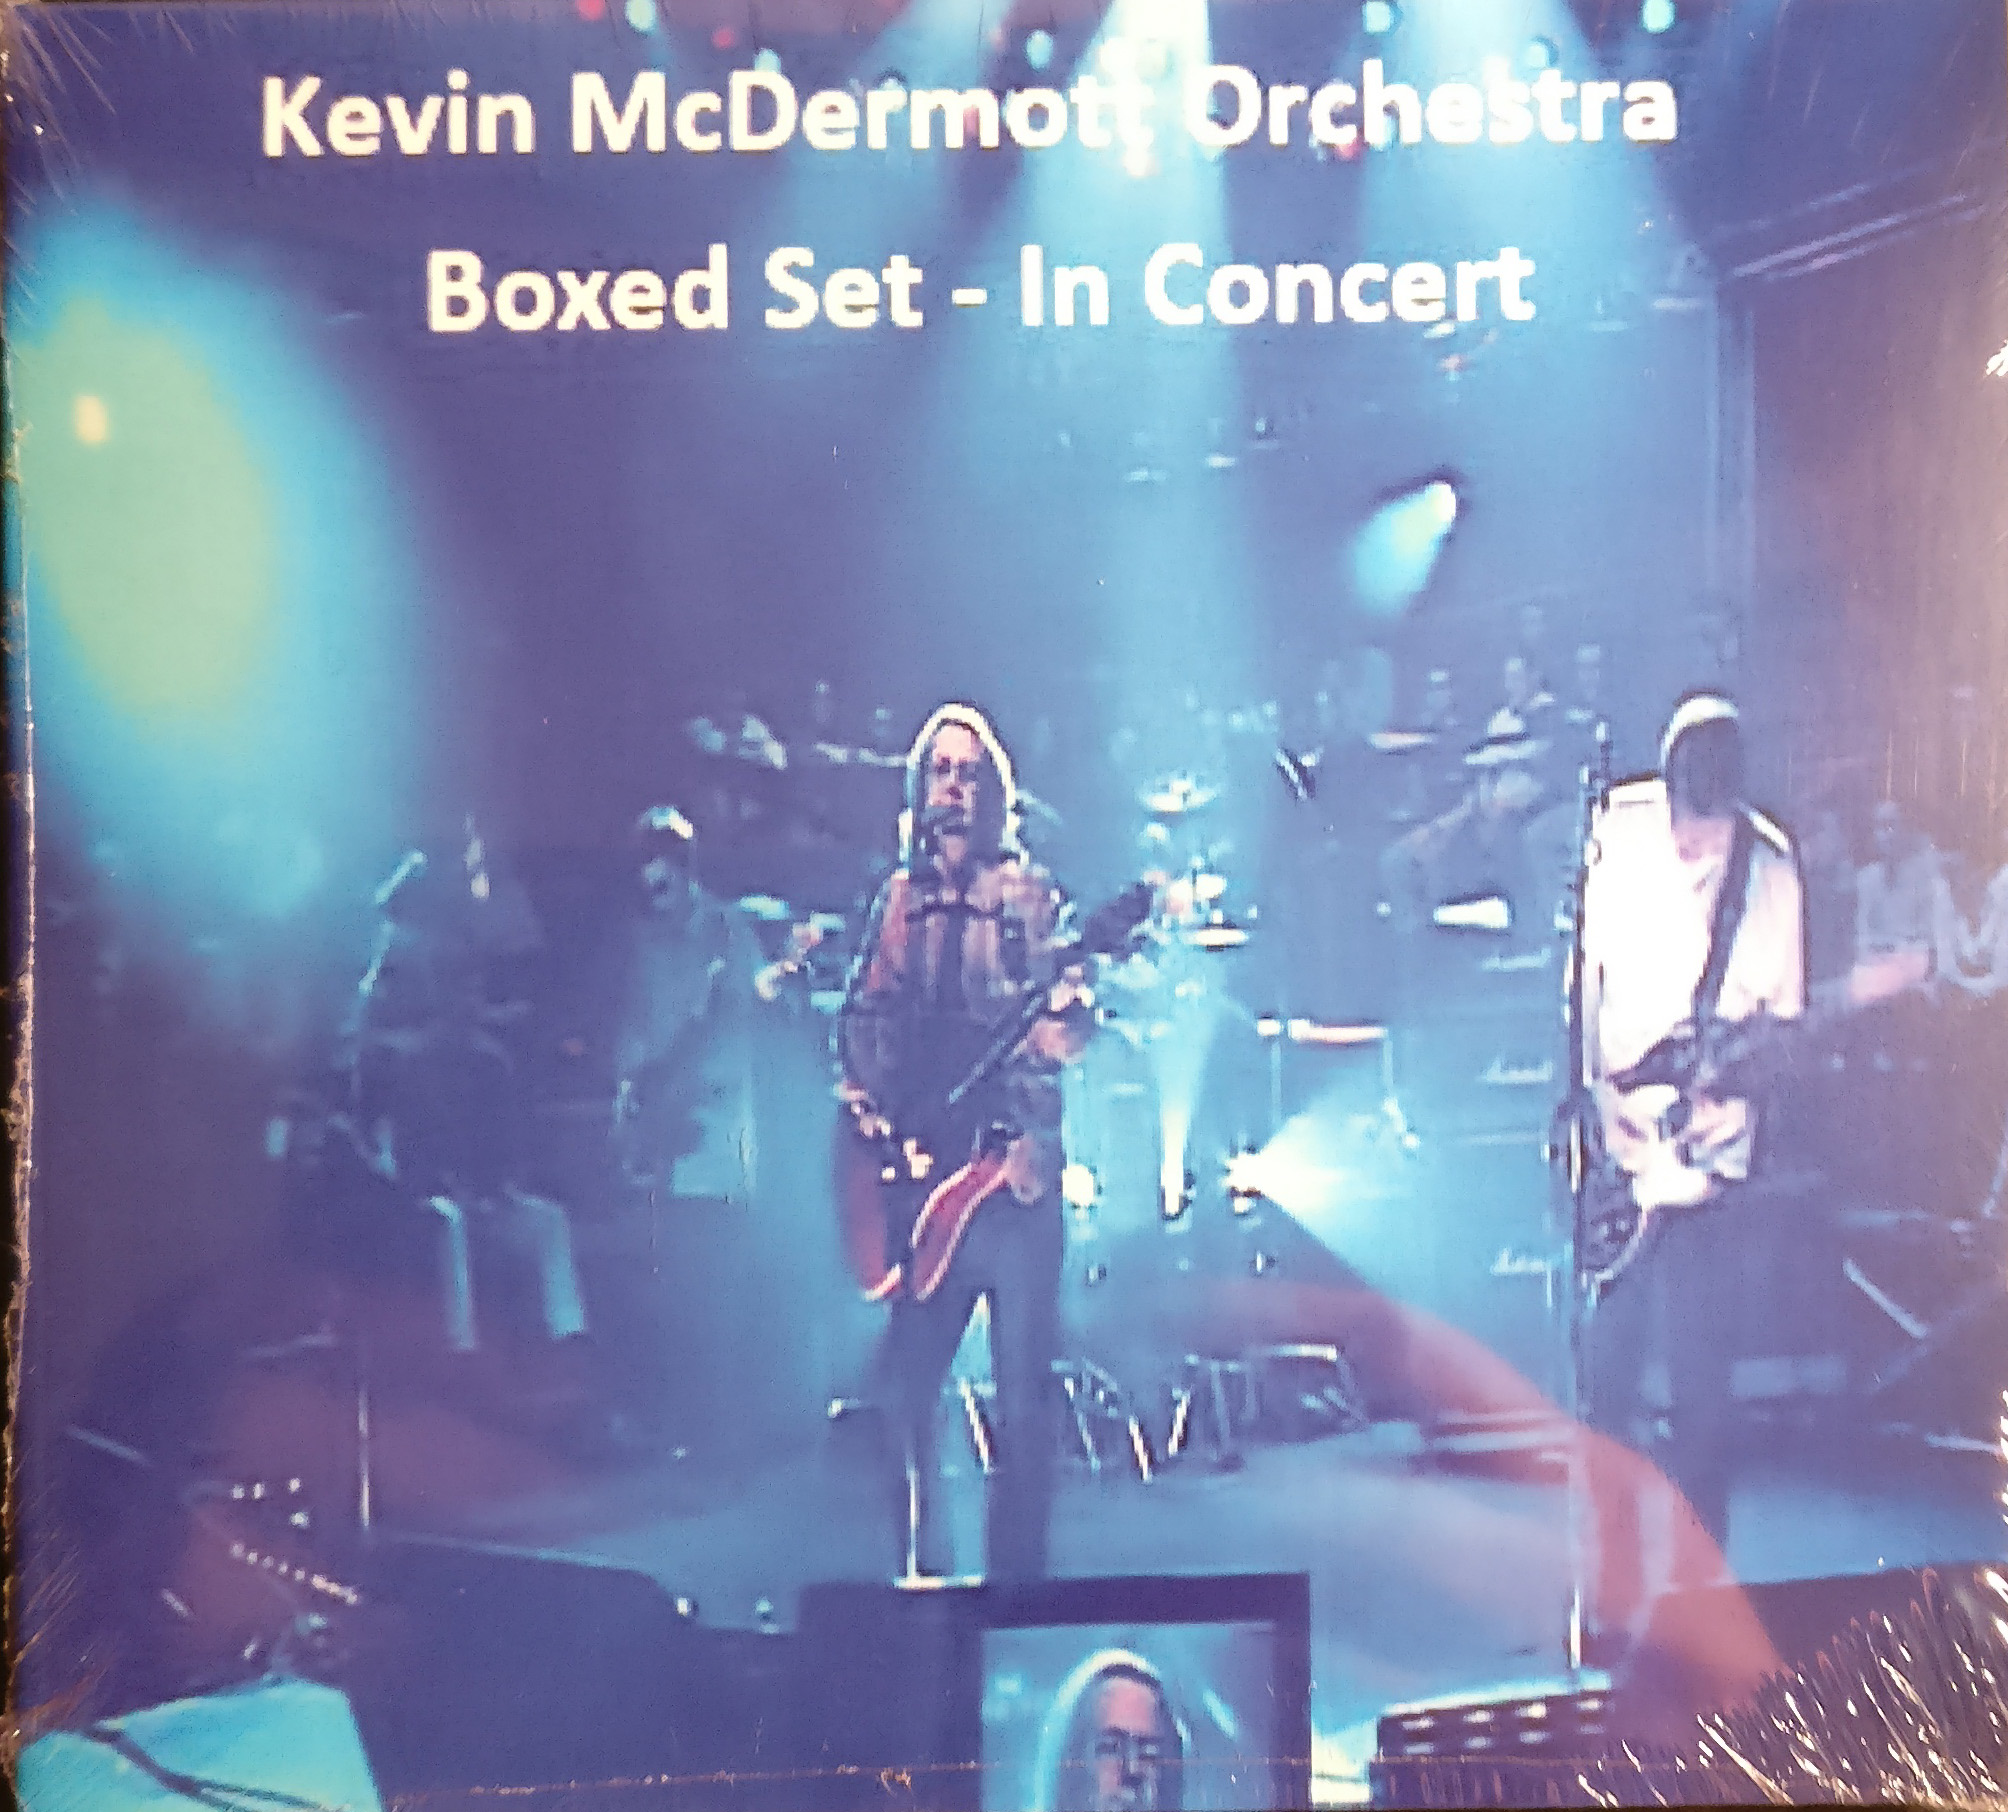 Live DVD & CD - Kevin McDermott Orchestra Live on Boxed Set - Kevin McDermott